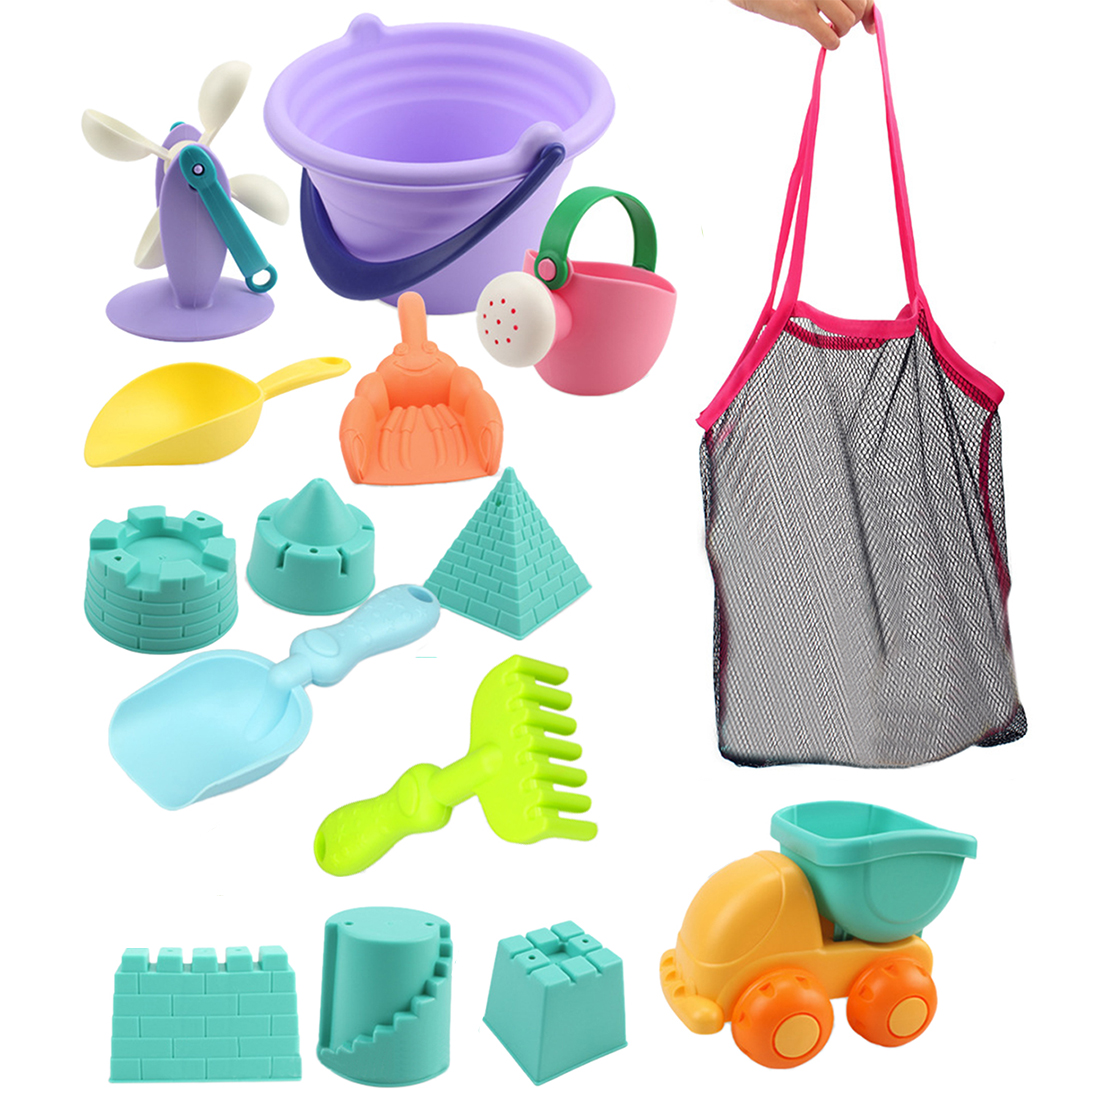 15Pcs Outdoor Beach Sand Toys Soft Rubber Baby Beach Game Bucket Playset For Kids Water Fun Beach Toy Set- Random Color